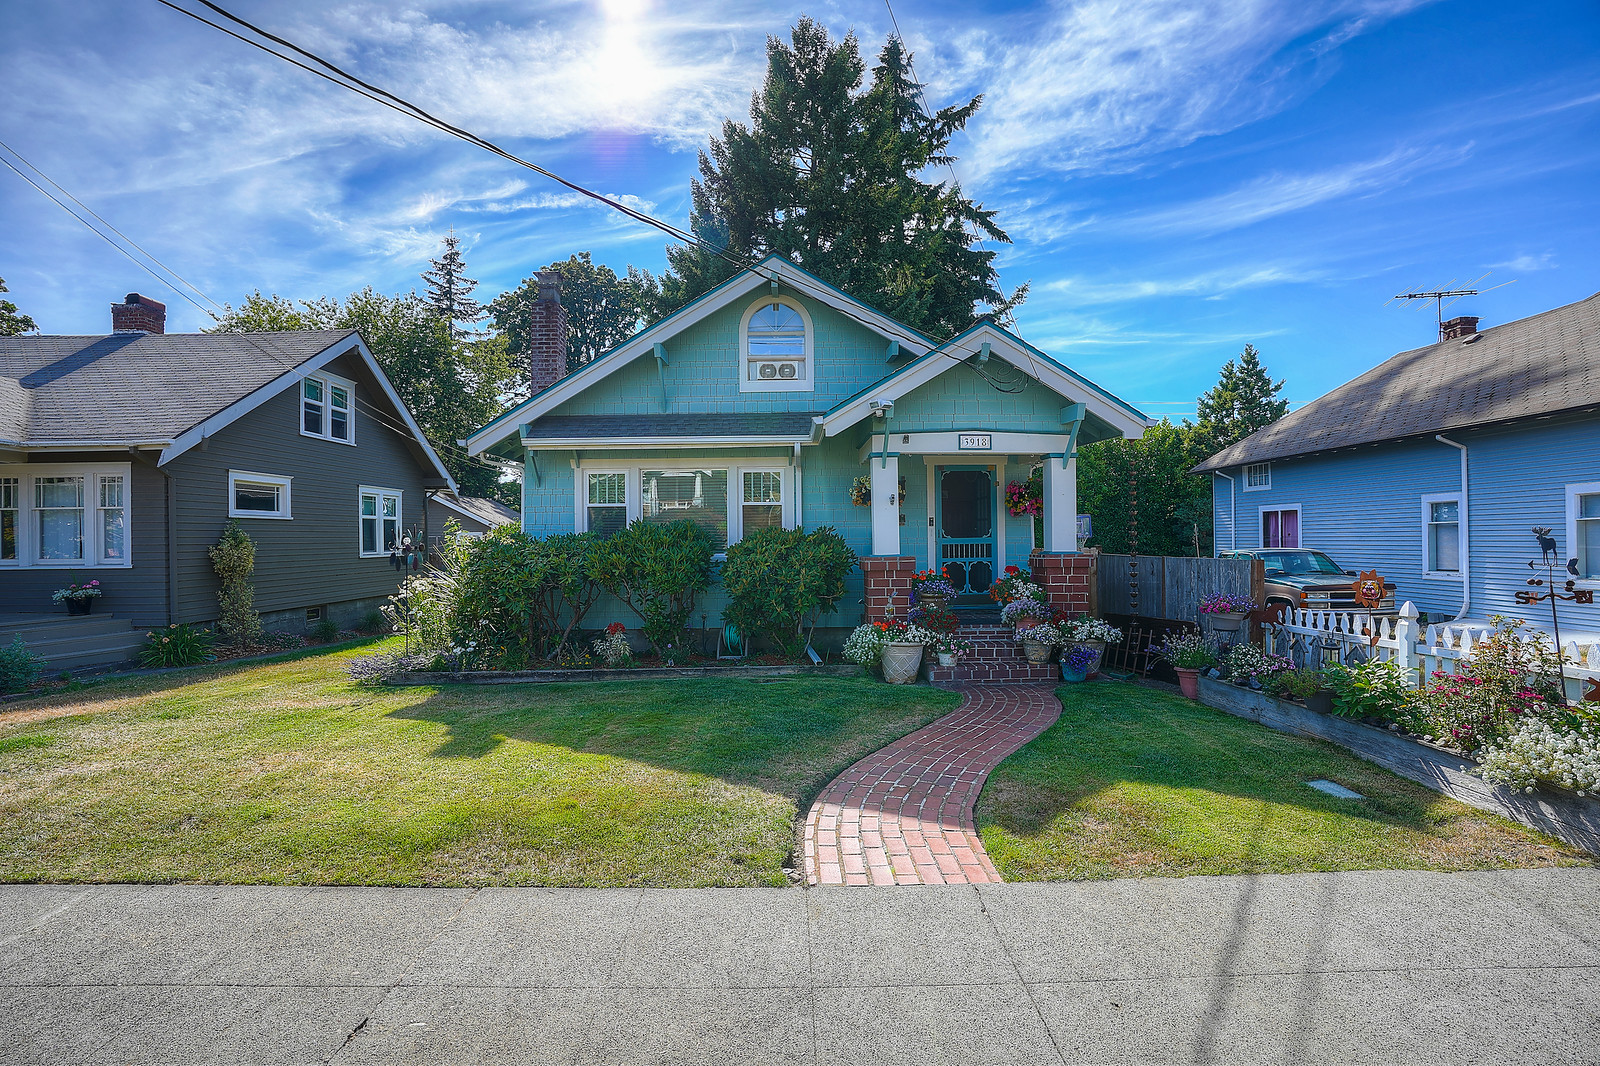 Gorgeous Vintage 3-Bedroom, 1.5-Bath Home w/Picturesque Backyard in ...